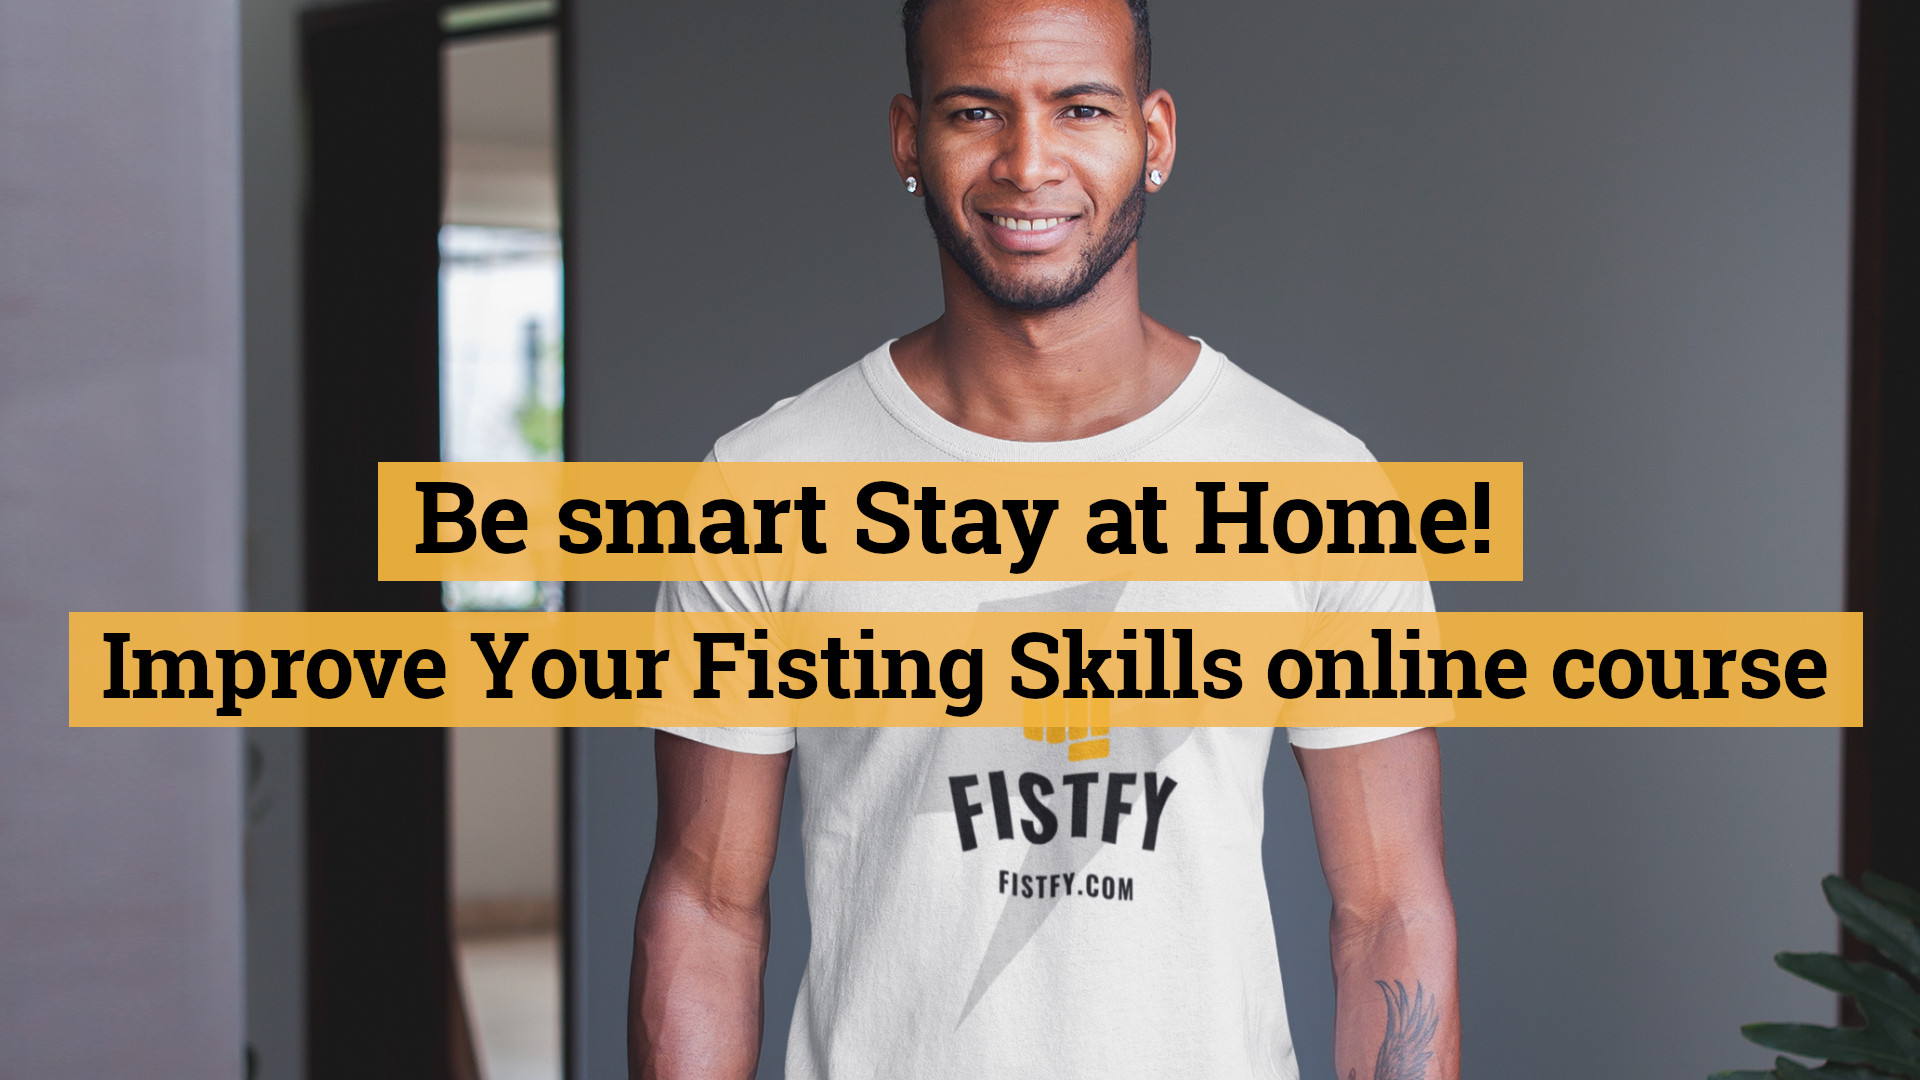 Be smart Stay at Home! Improve Your Fisting Skills online course now!